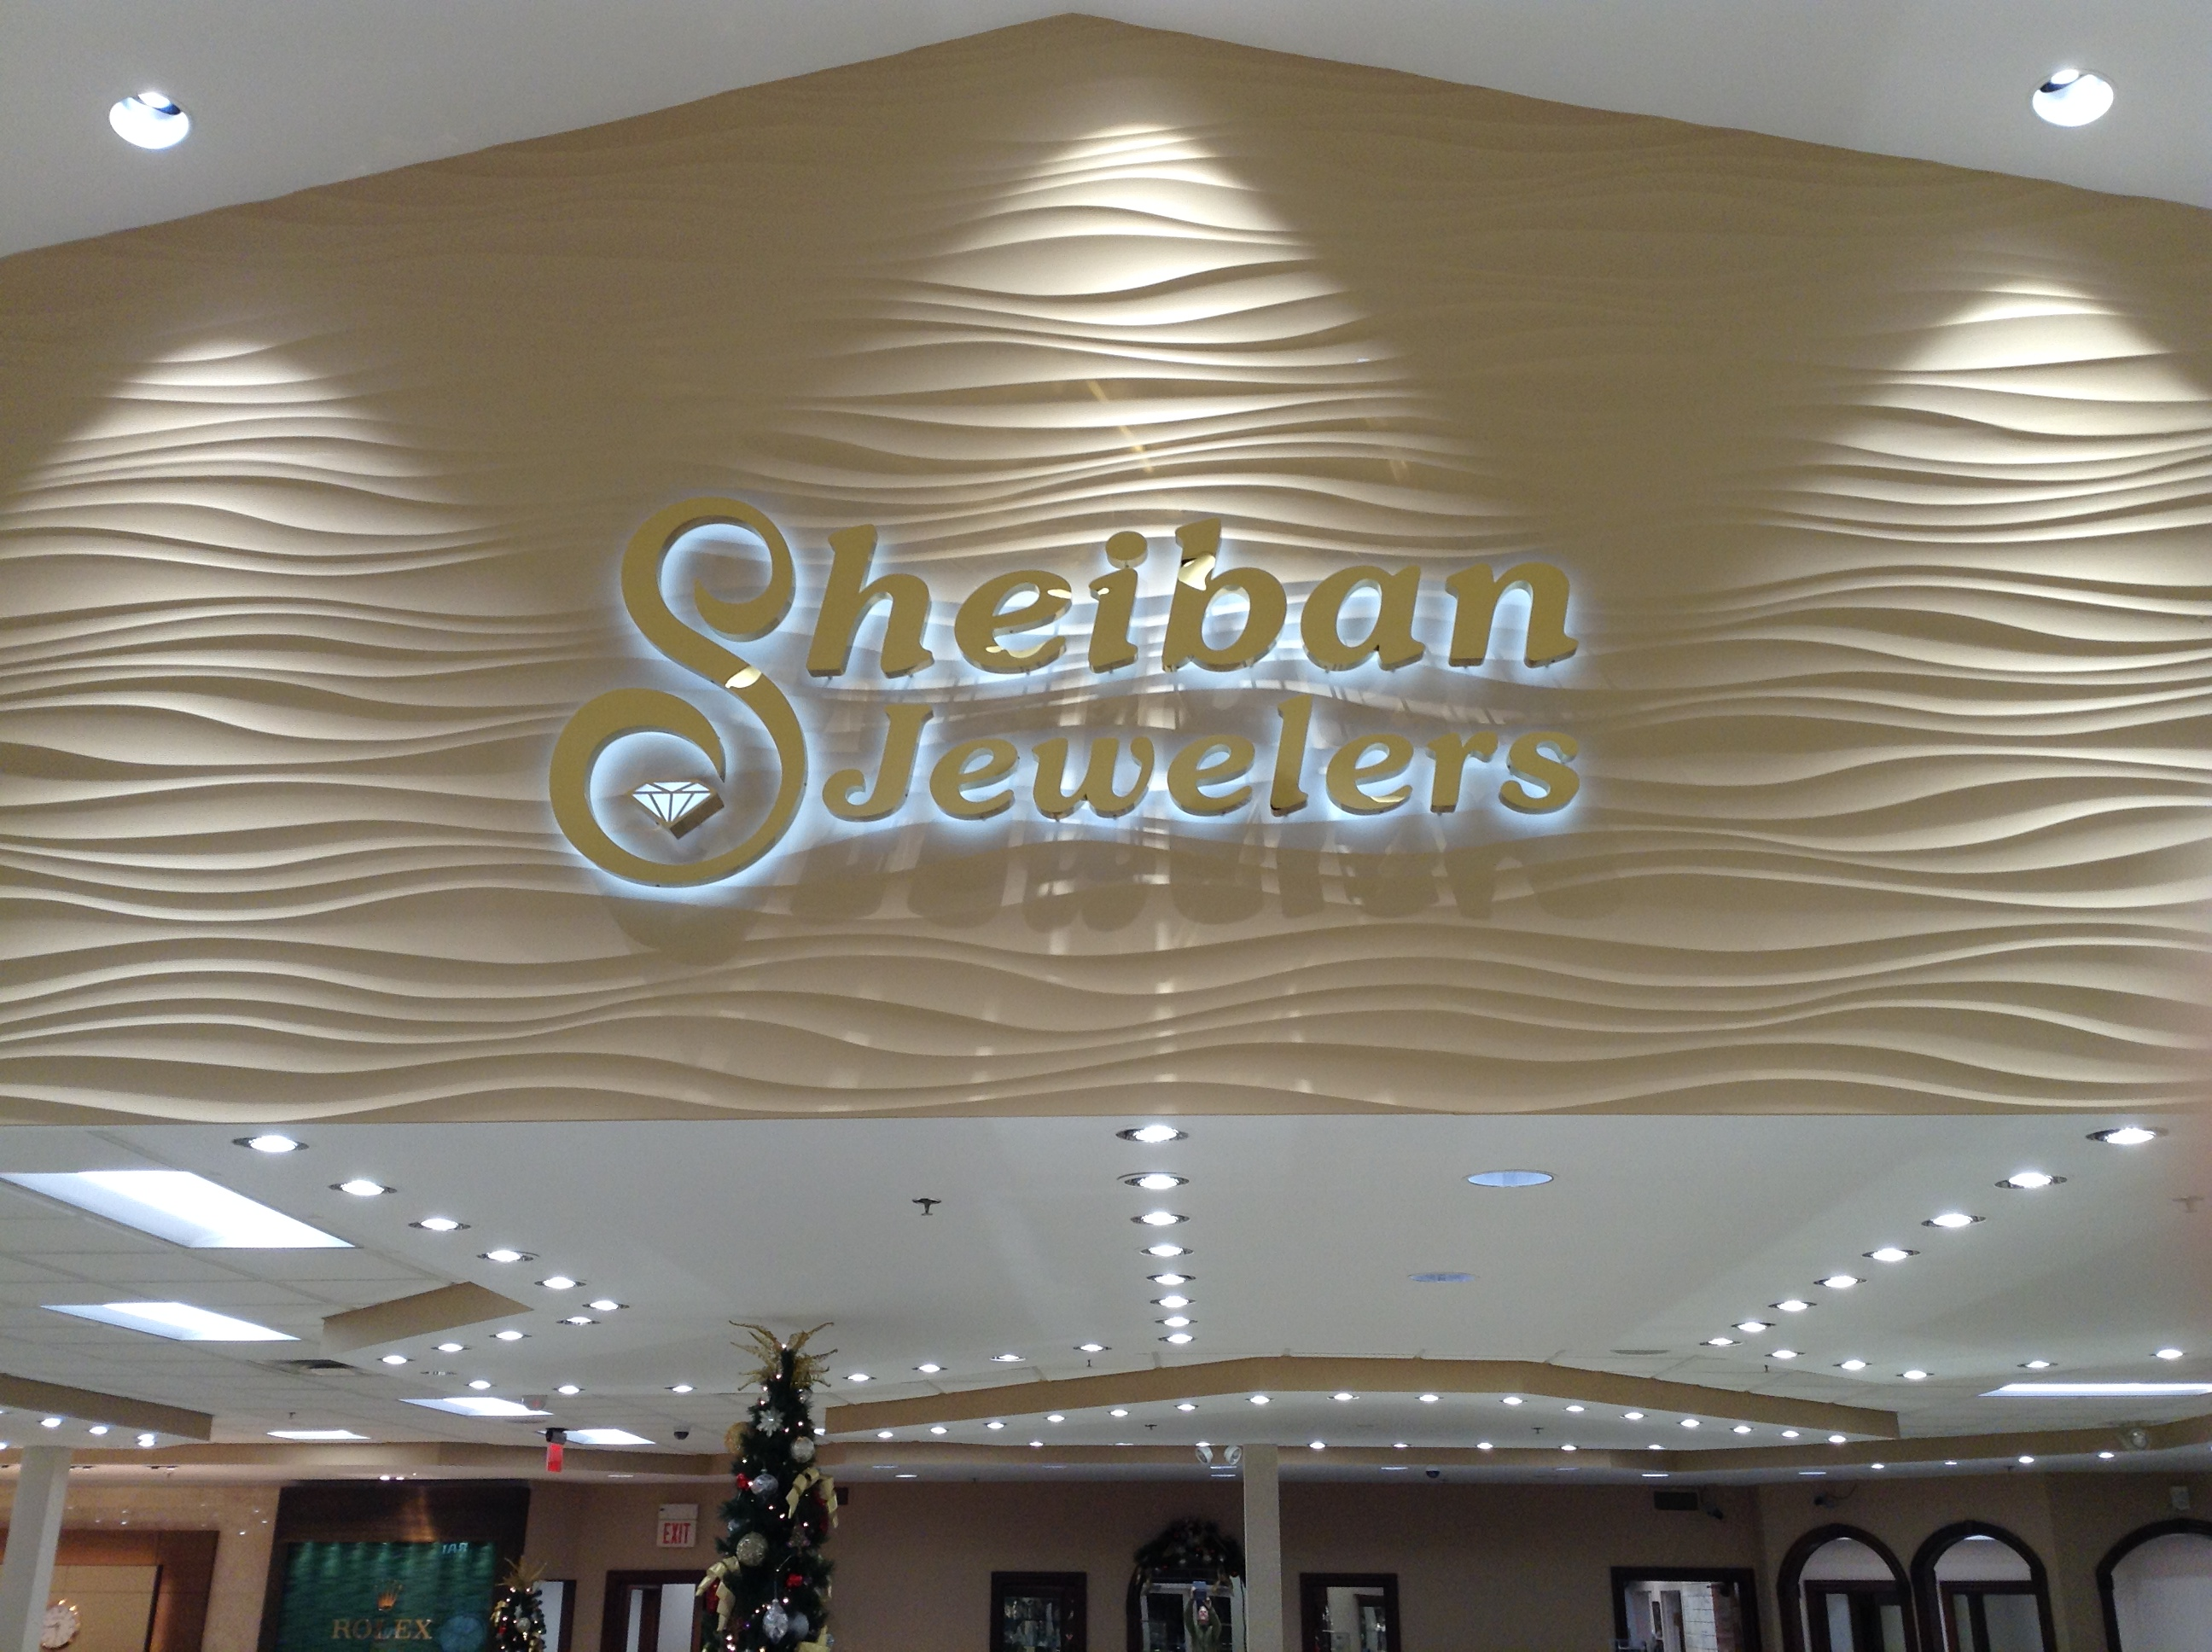 Lobby sign by Epic Signs & Graphics